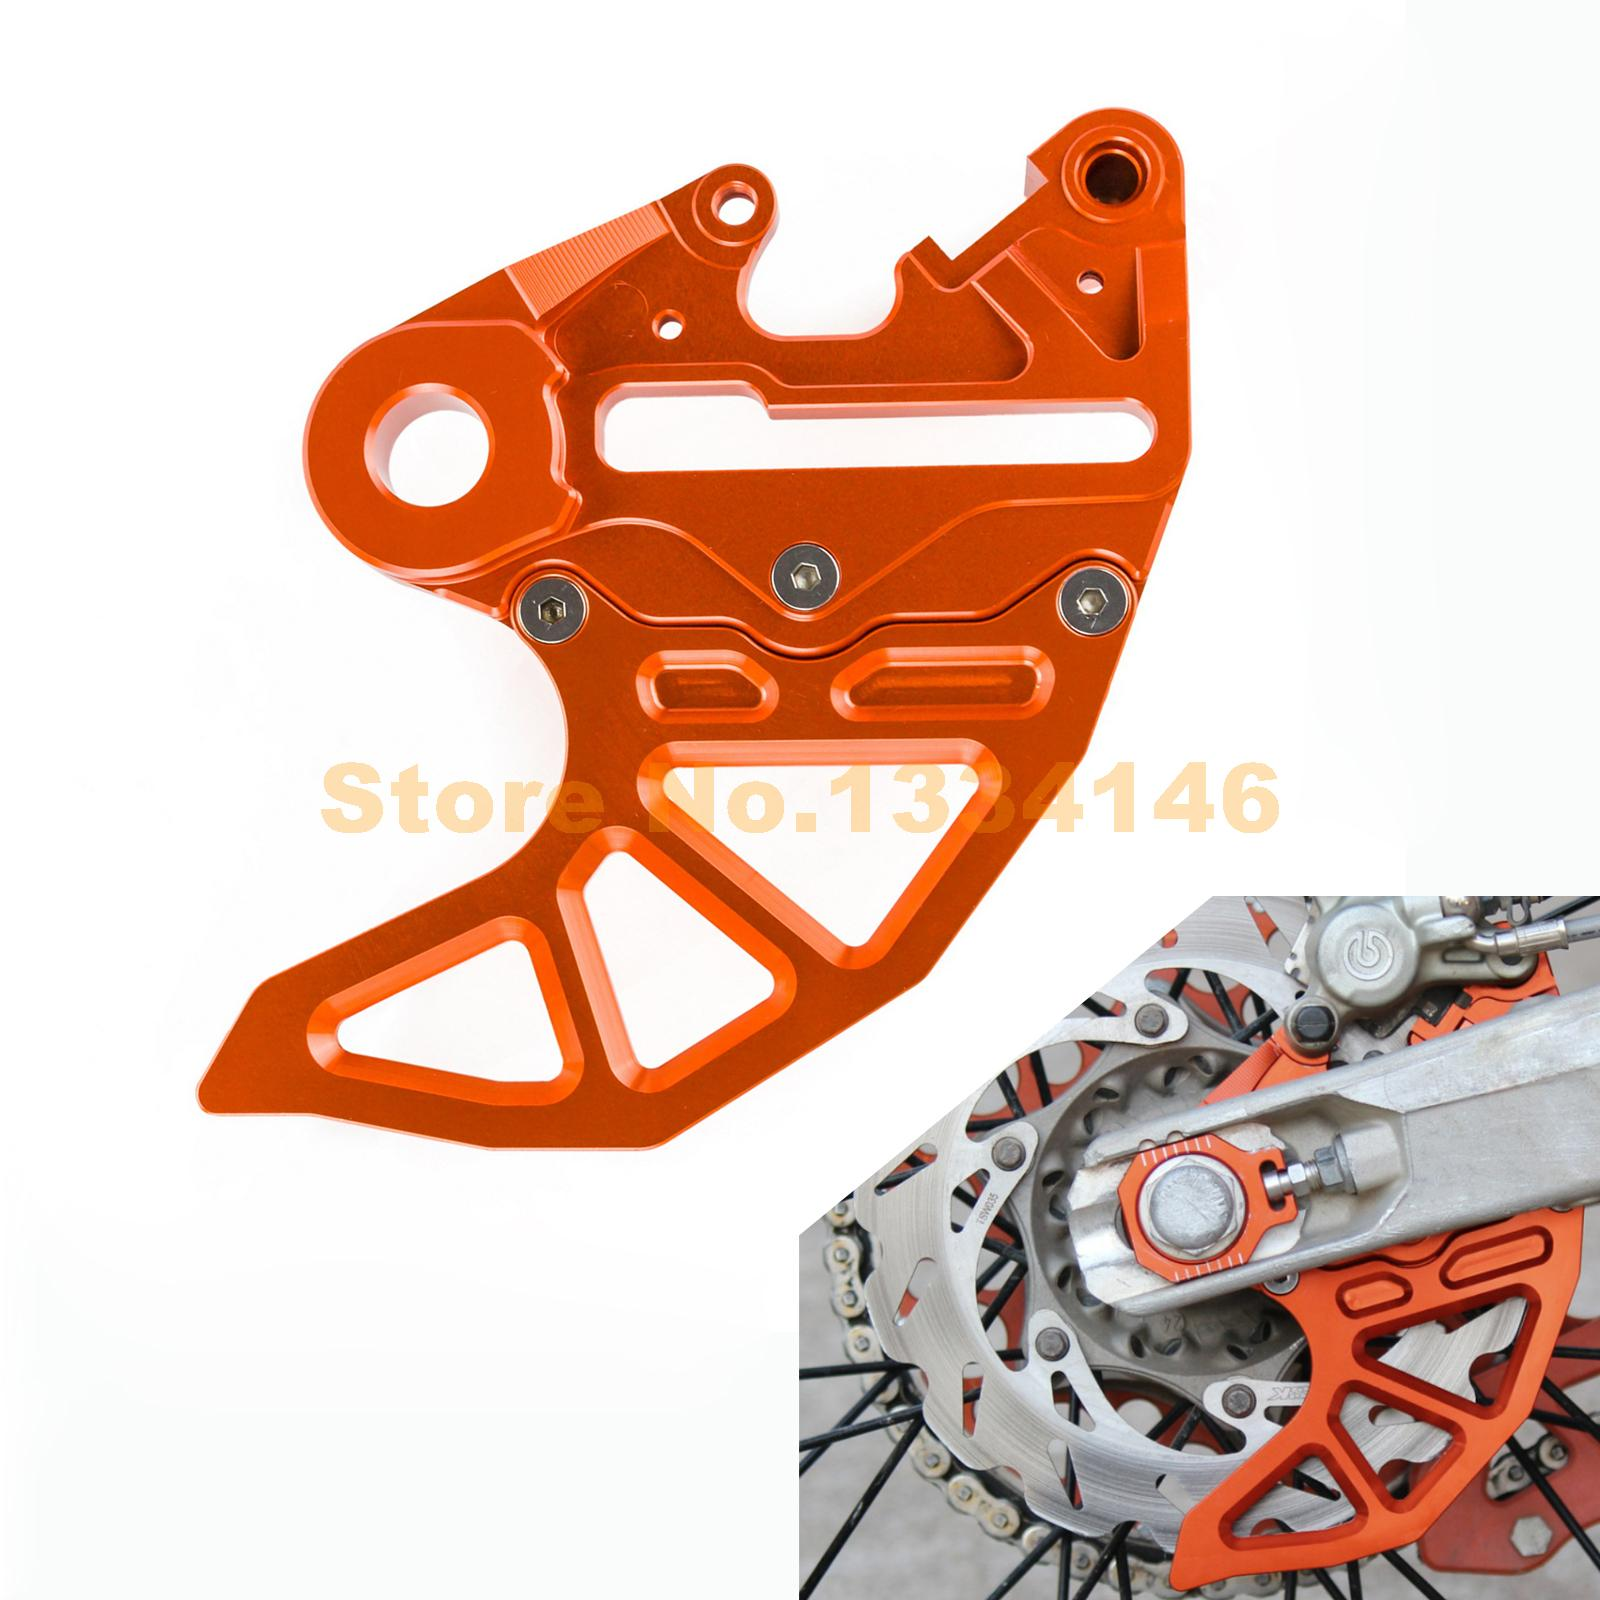 NICECNC Brake Caliper Support & Brake Disc Guard Fits For KTM 125 150 250 350 450 525 530 SX SXF EXC EXCF XC XCW XCFW 2016 2017 motorcycle front brake disc rotor guard brake cover brake protector for ktm 125 530 sx sxf xc xcf 03 14 125 530 exc excf 03 15